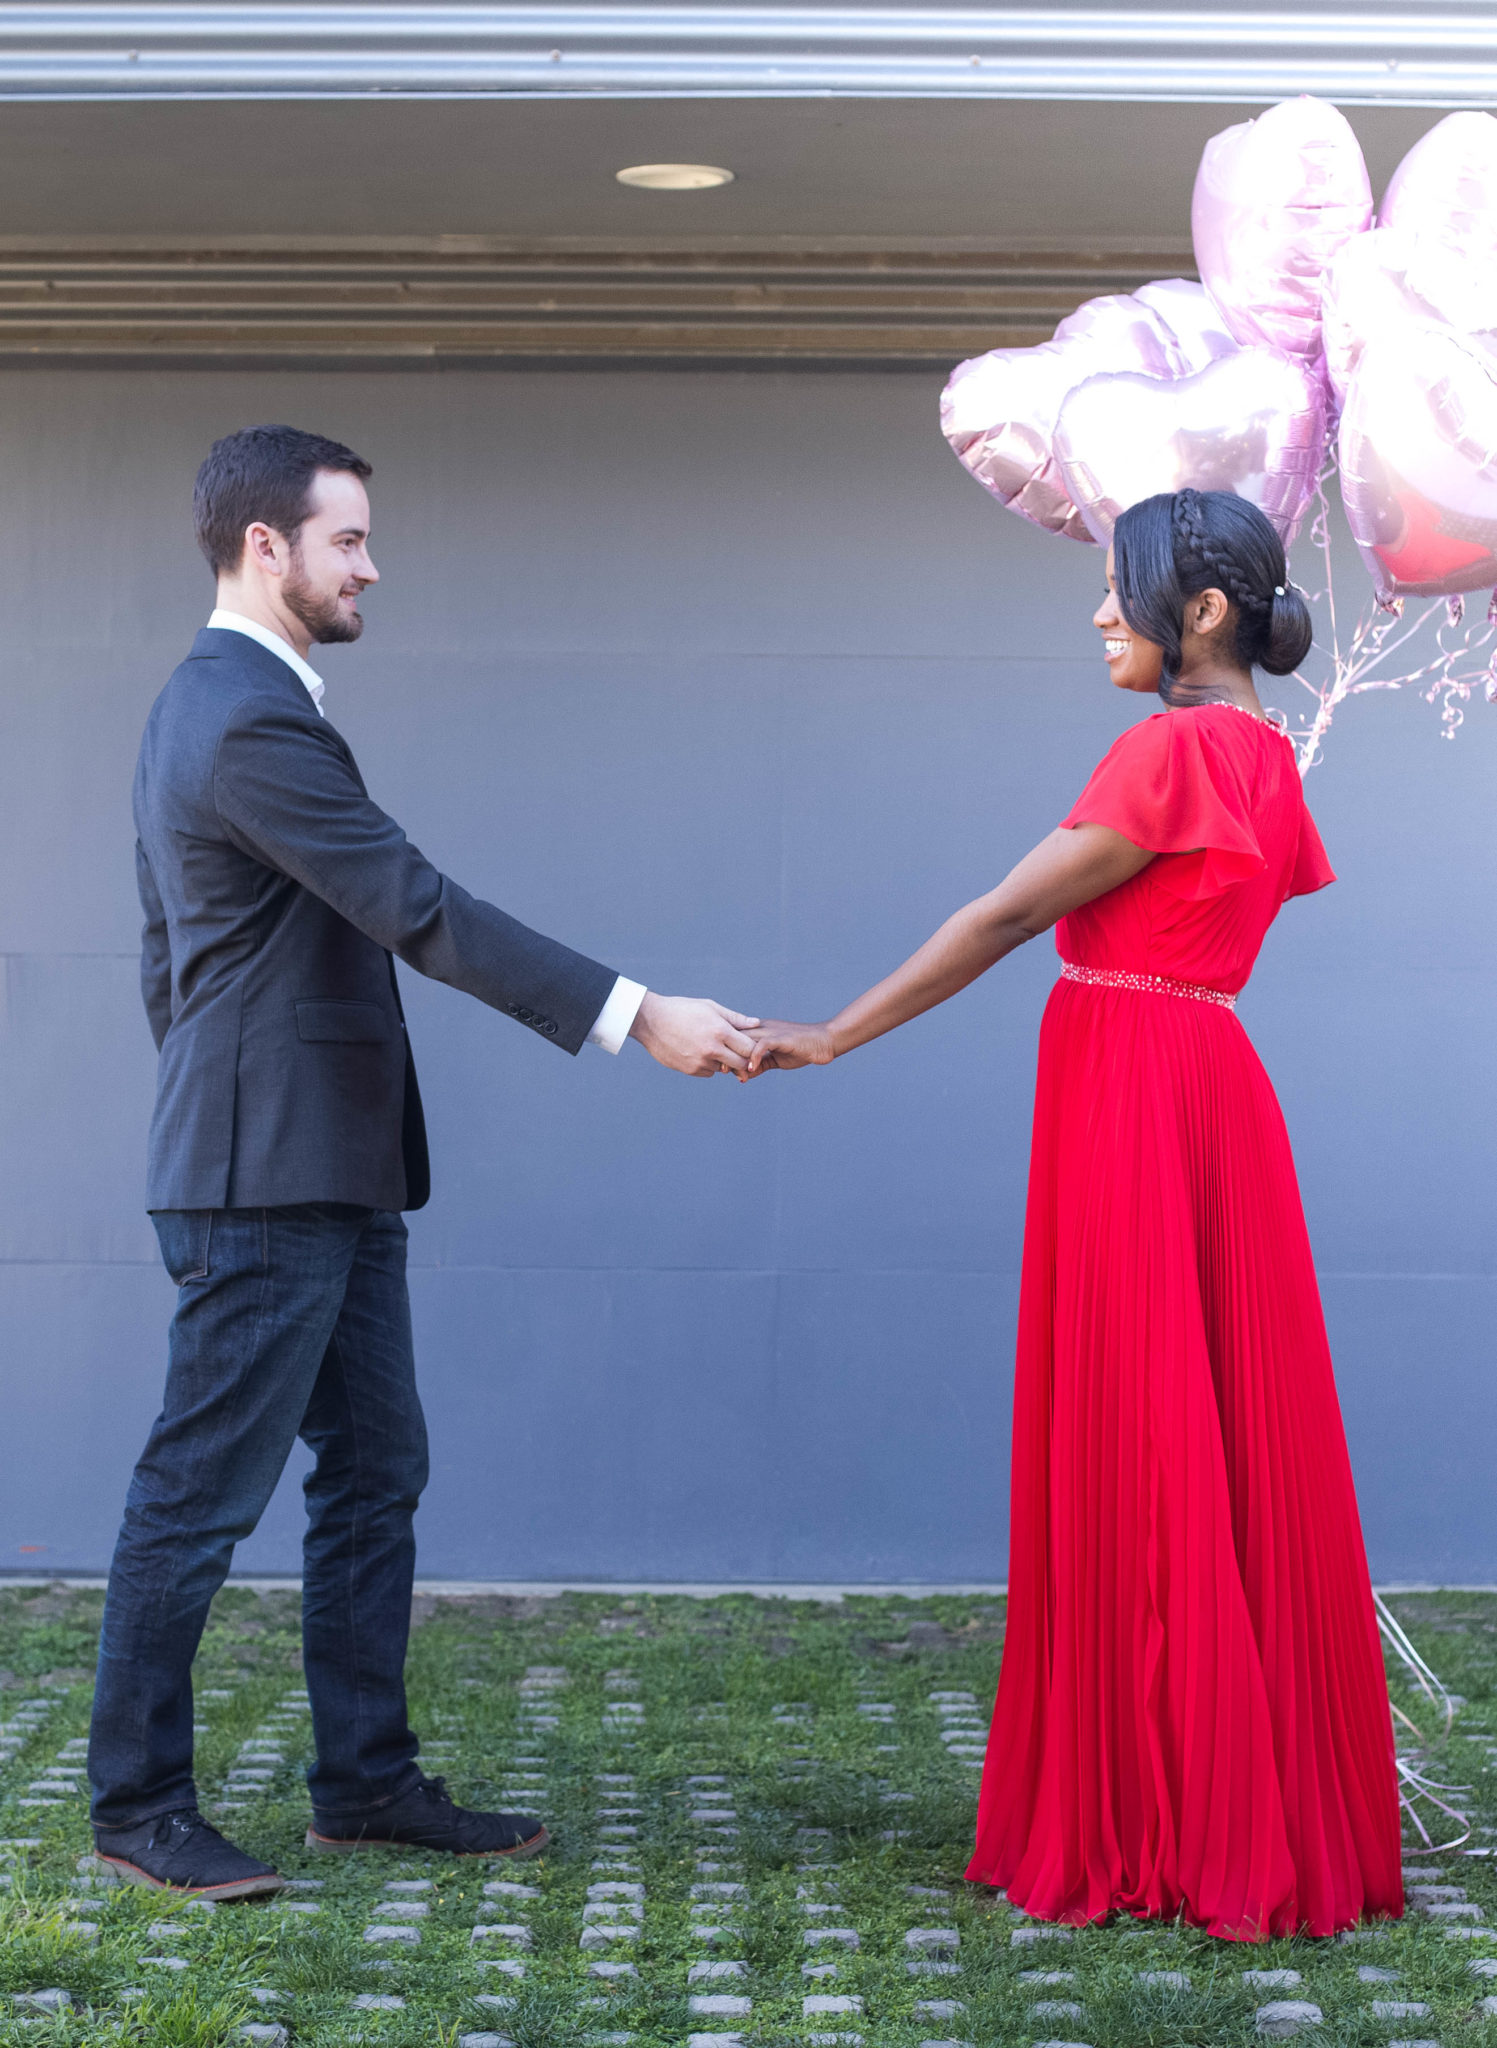 Modest Bridesmaid Dress and Valentine Outfit Idea from Azazie via DowntownDemure.com l A Modest Fashion Blog